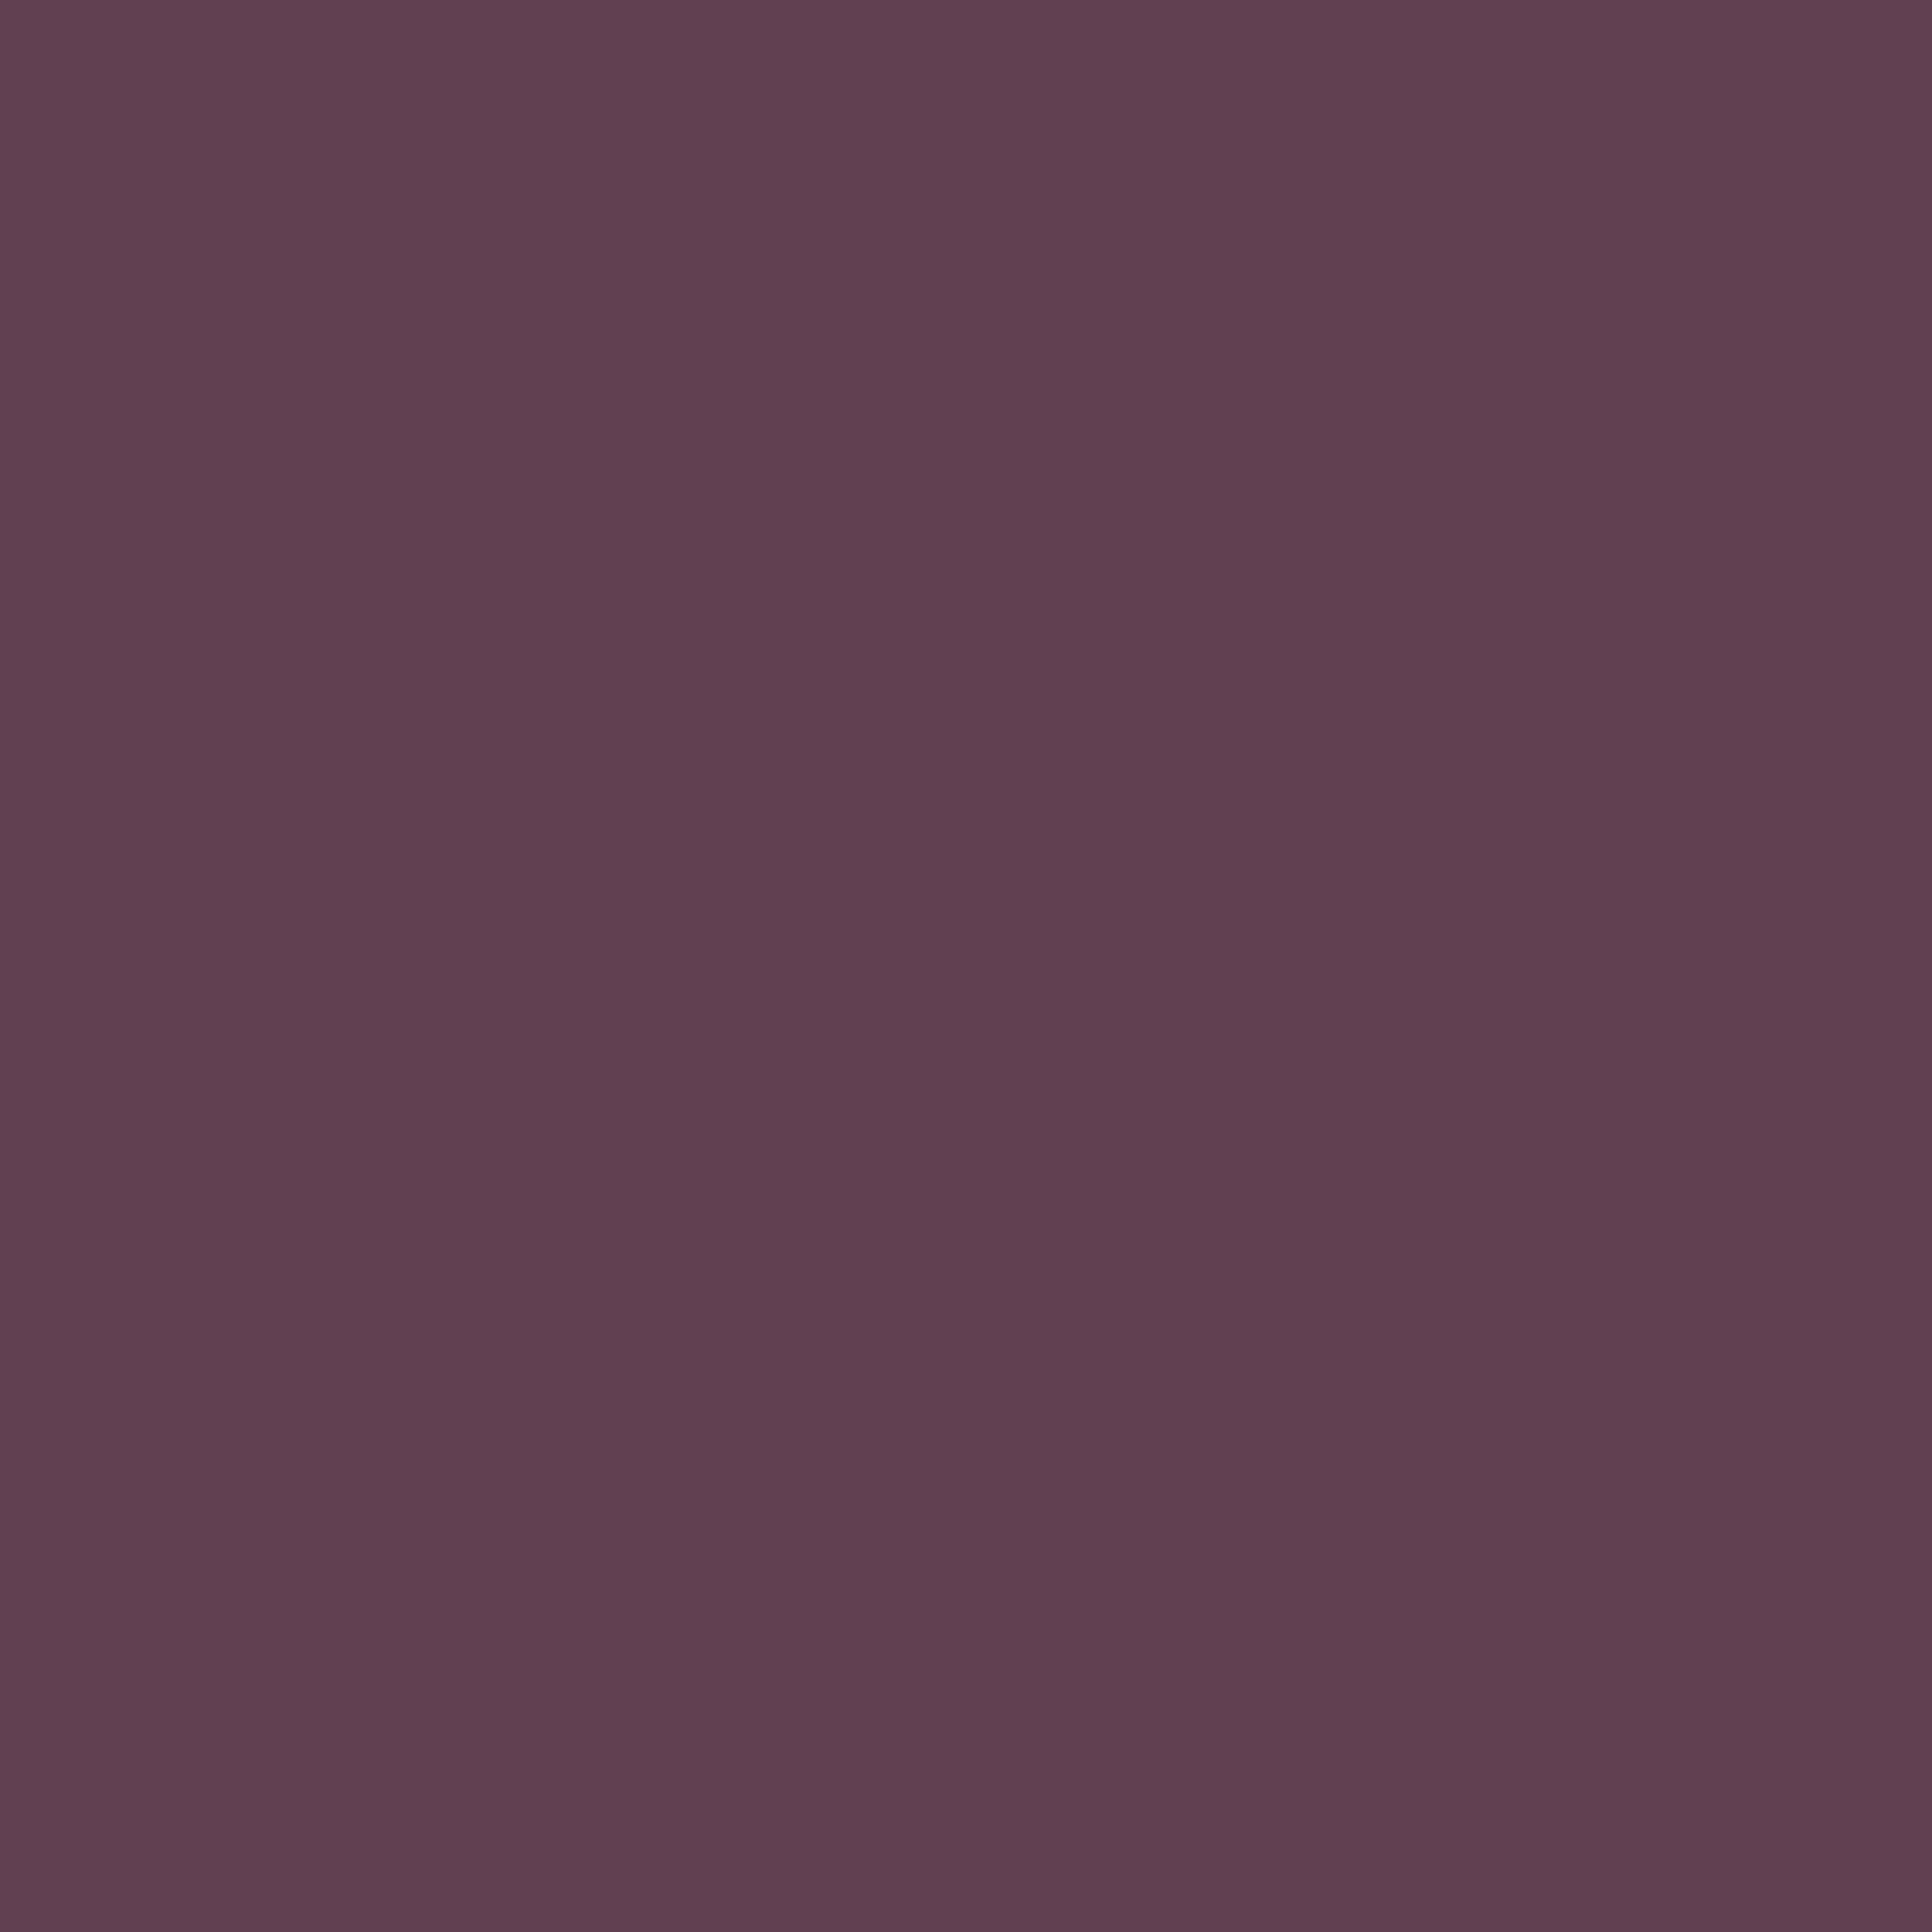 2732x2732 Eggplant Solid Color Background